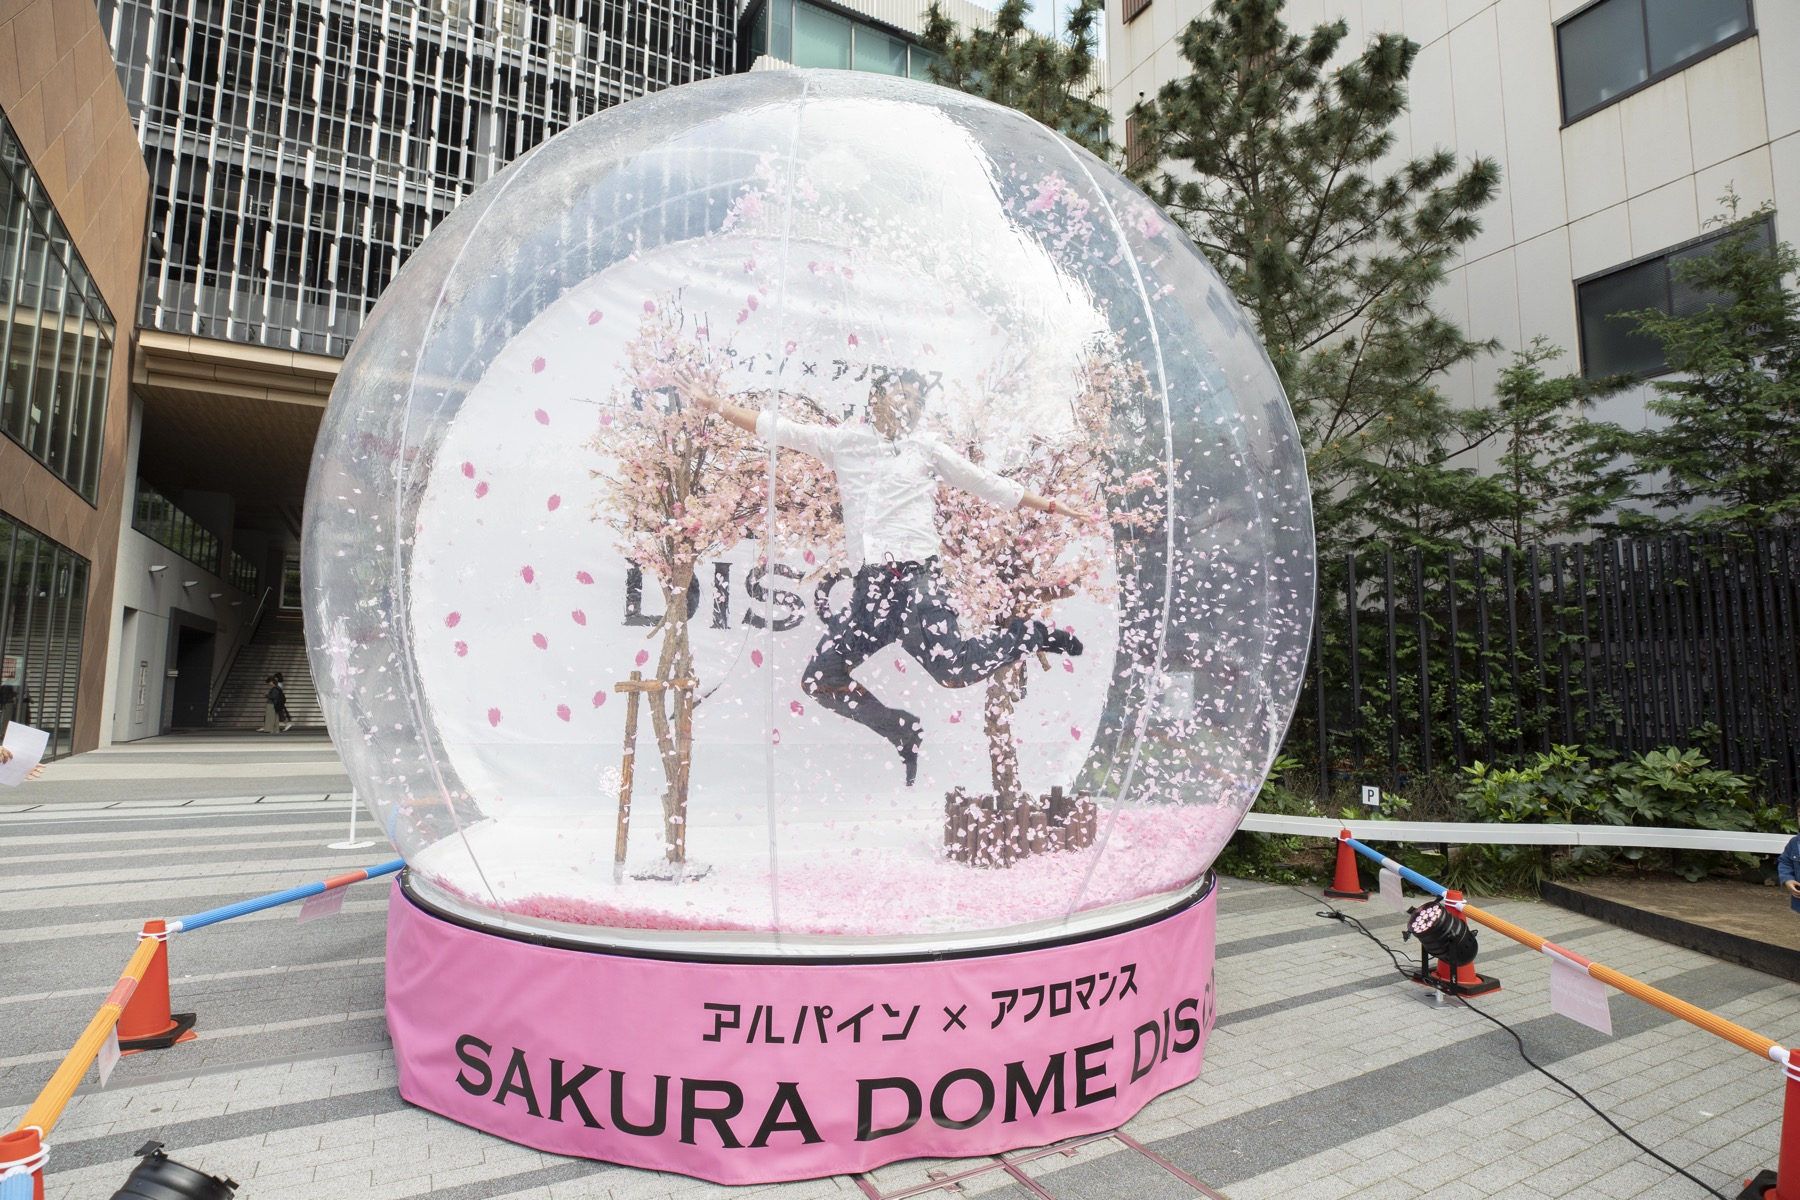 190421_SAKURA DOME DISCO_top20 - 9 / 20